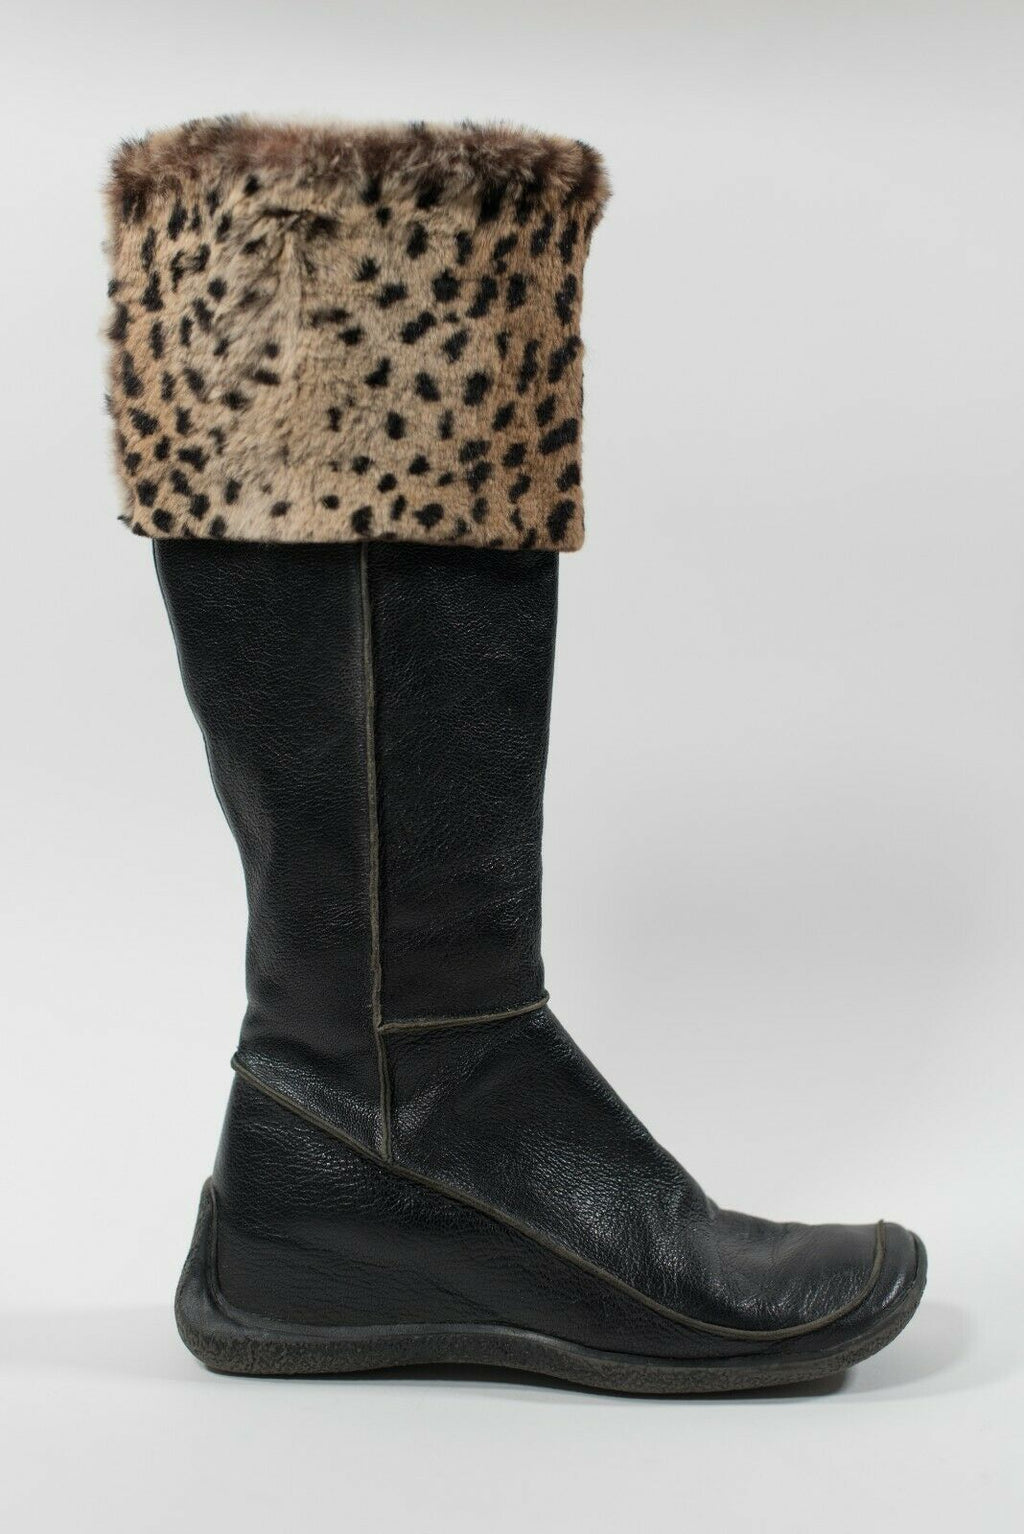 Ash Women's Size 38 Black Brown Boots Tall Leather Faux Leopard Cuff Rubber Sole